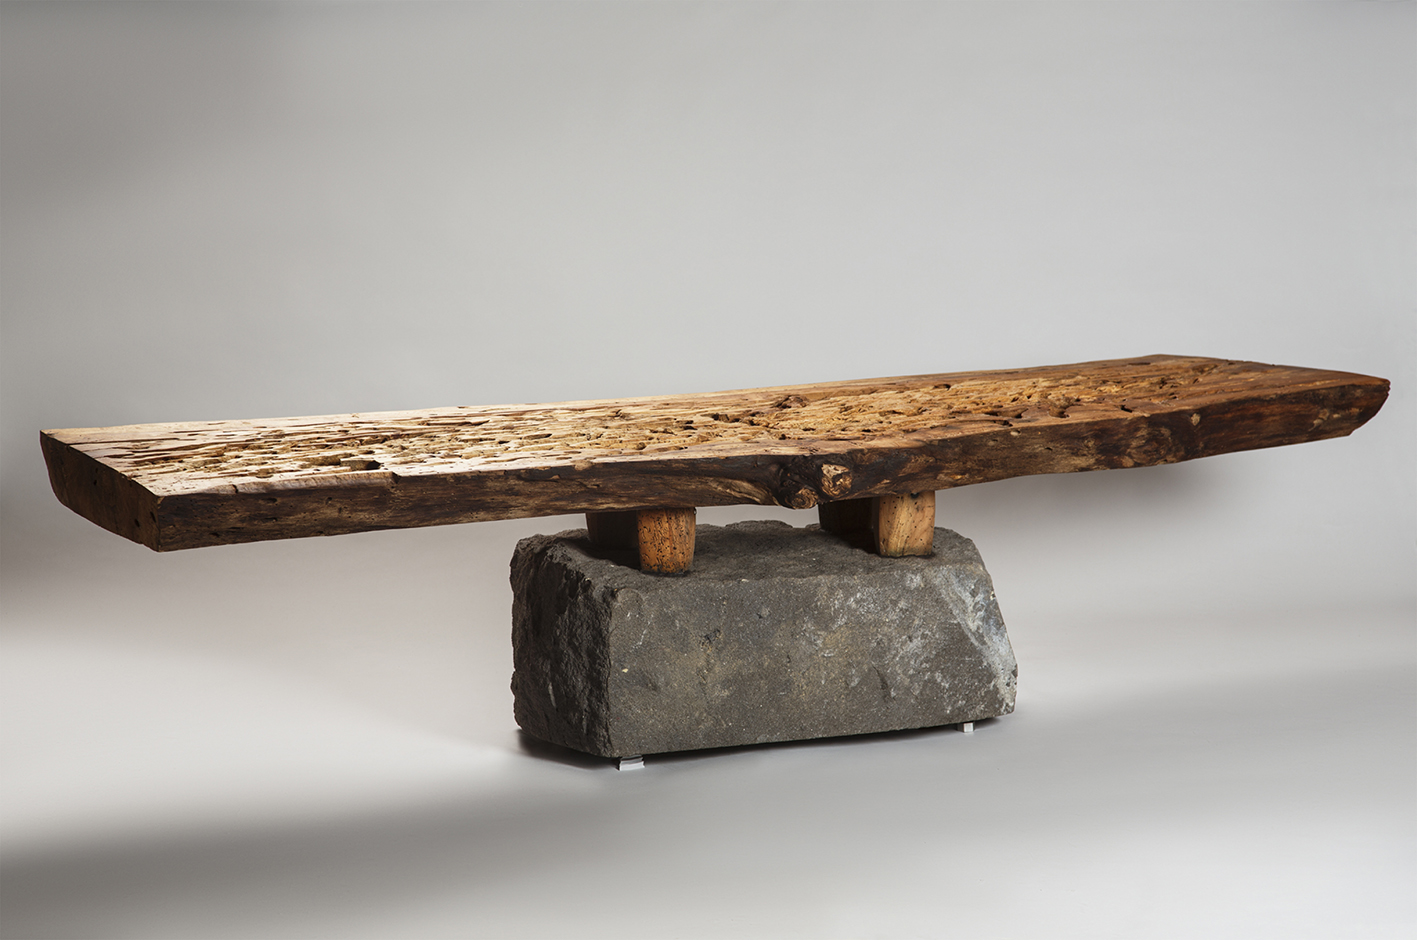 web2-bench-salvaged-mexican-alder-wood-basalt-recinto-with-feet-shi-ho-julio-martinez-marion-friedmann-gallery-23.jpg